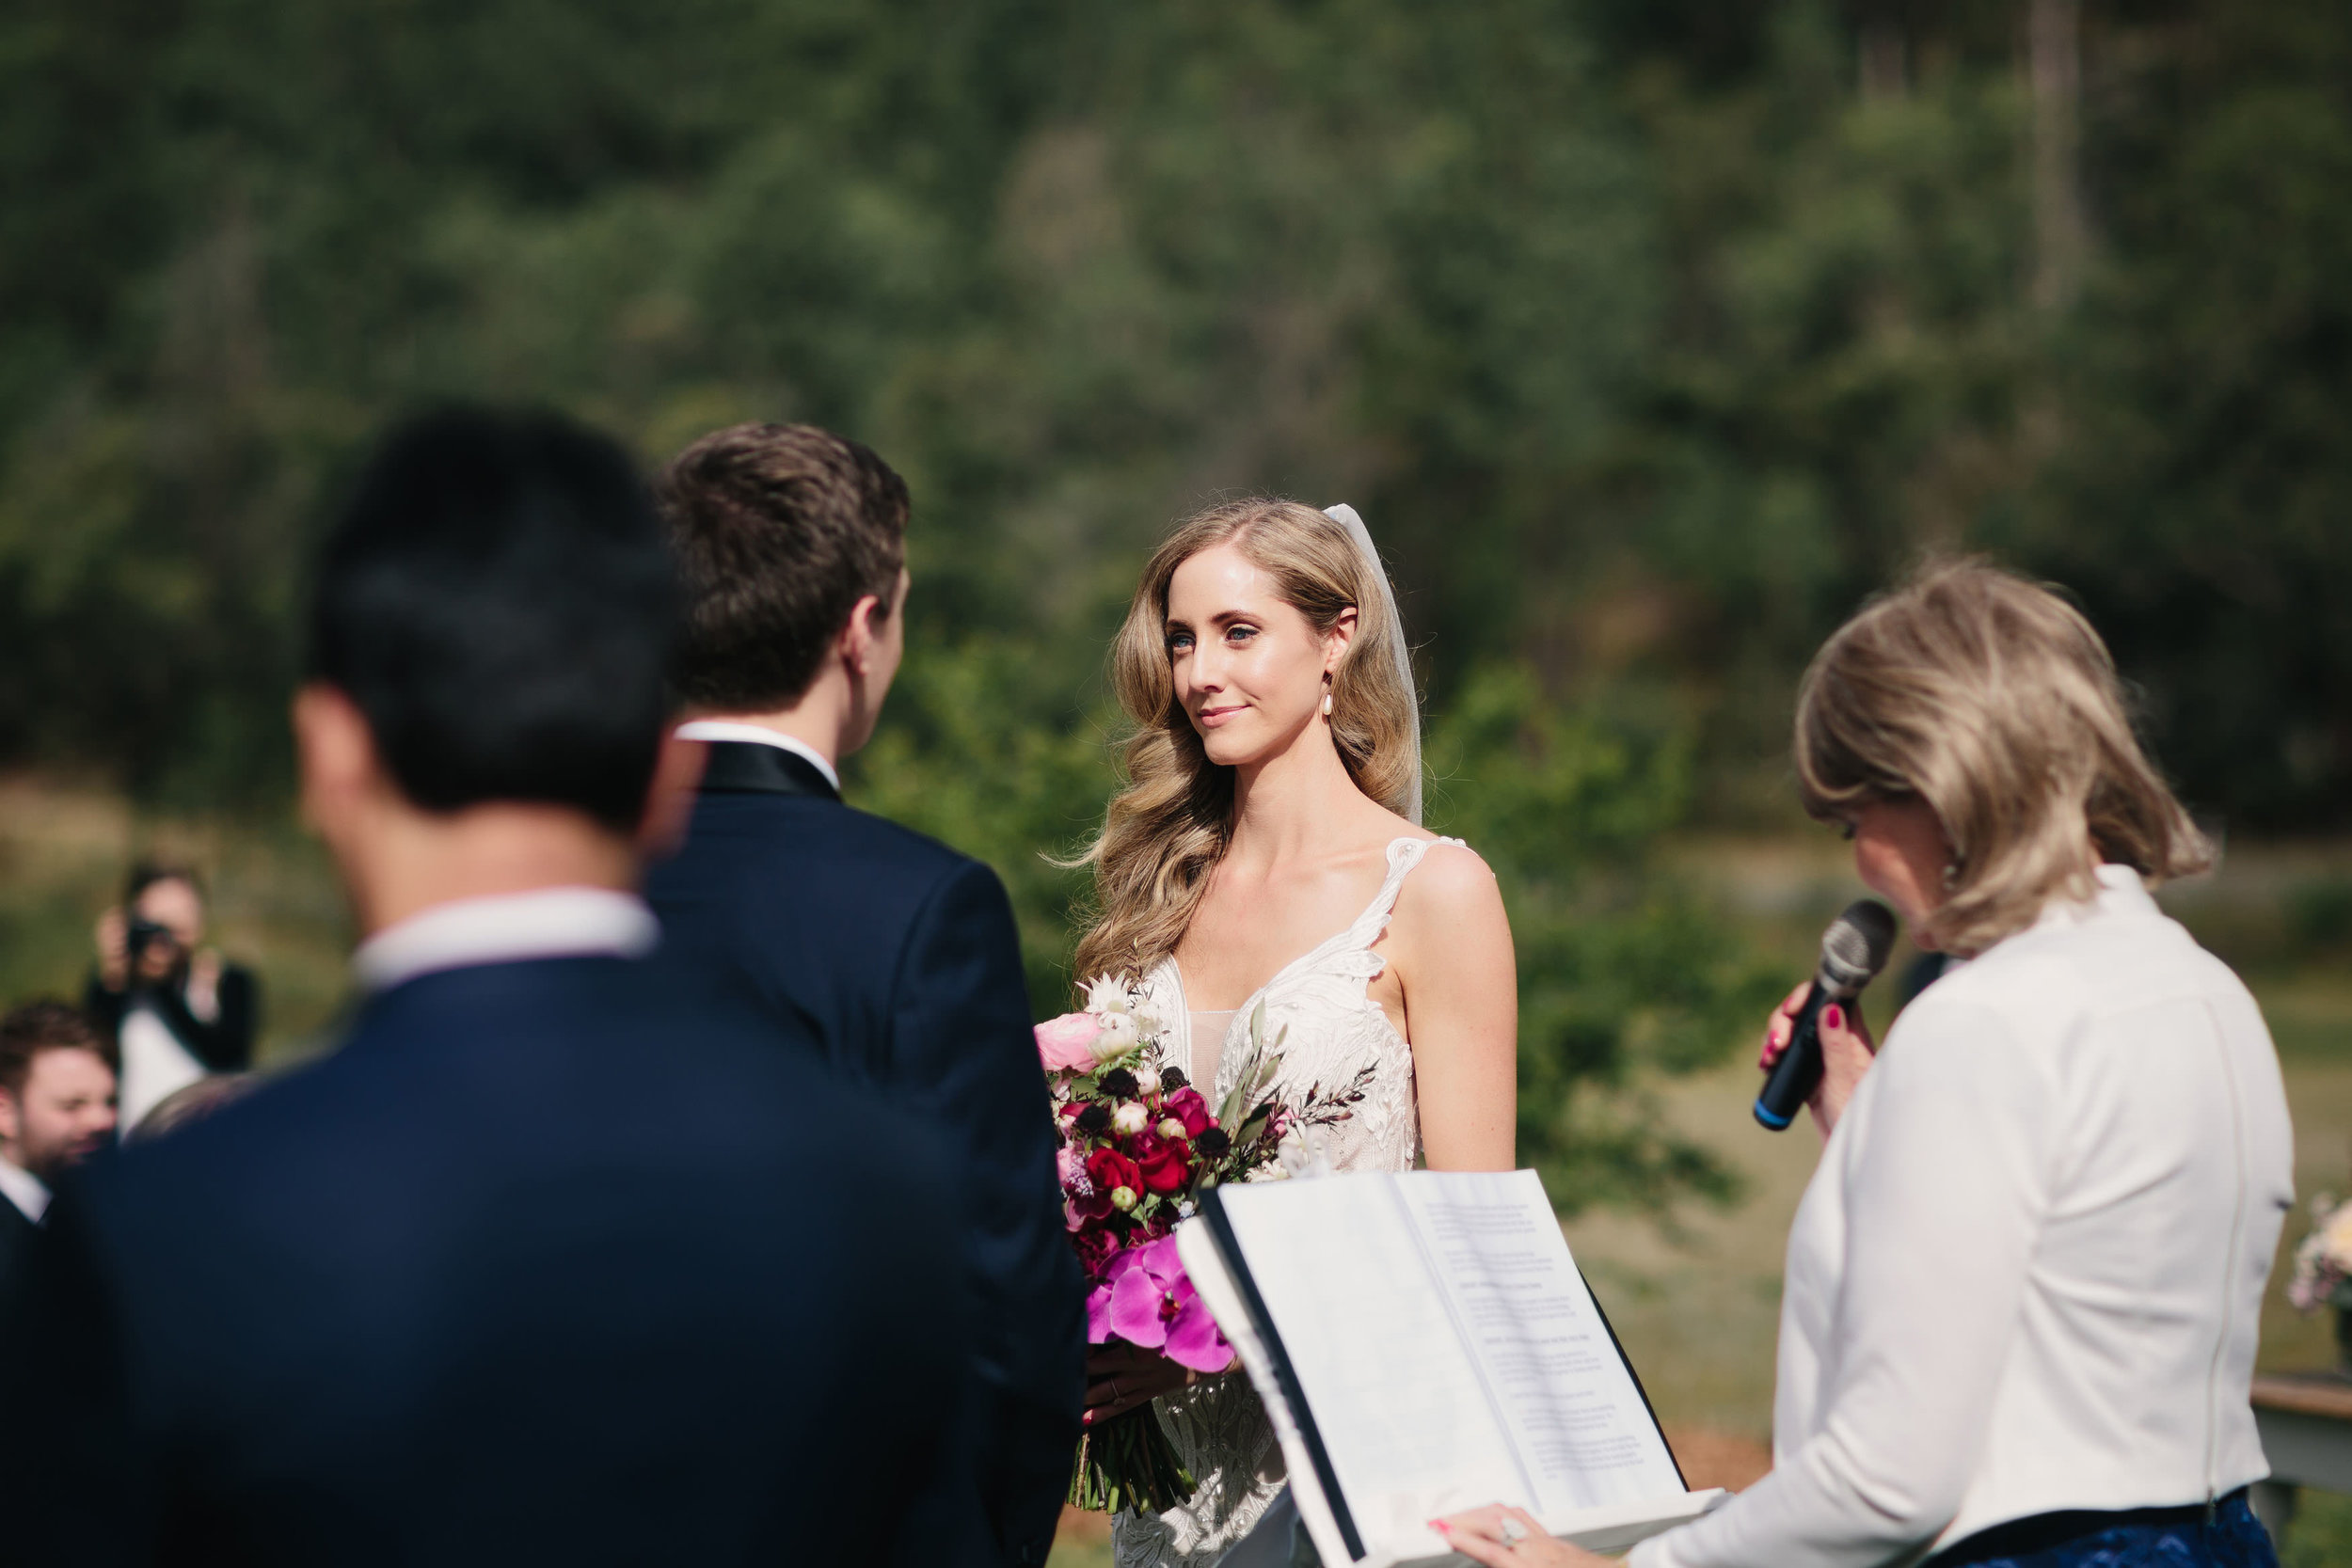 039_hunter_valley_wedding_photography_redleaf_paul_bamford_finchandoak.jpg